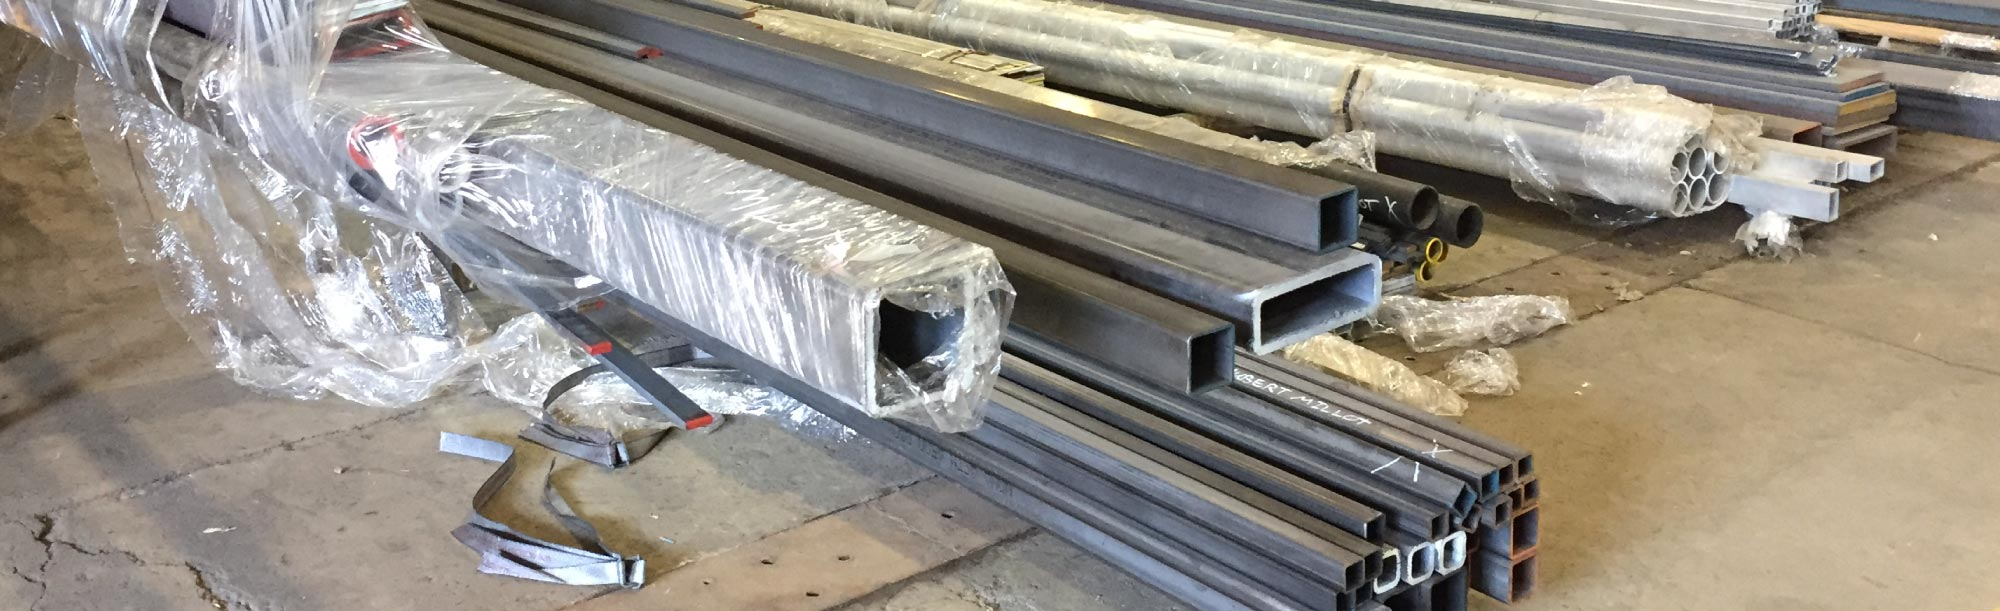 Metal tubes prepared for delivery